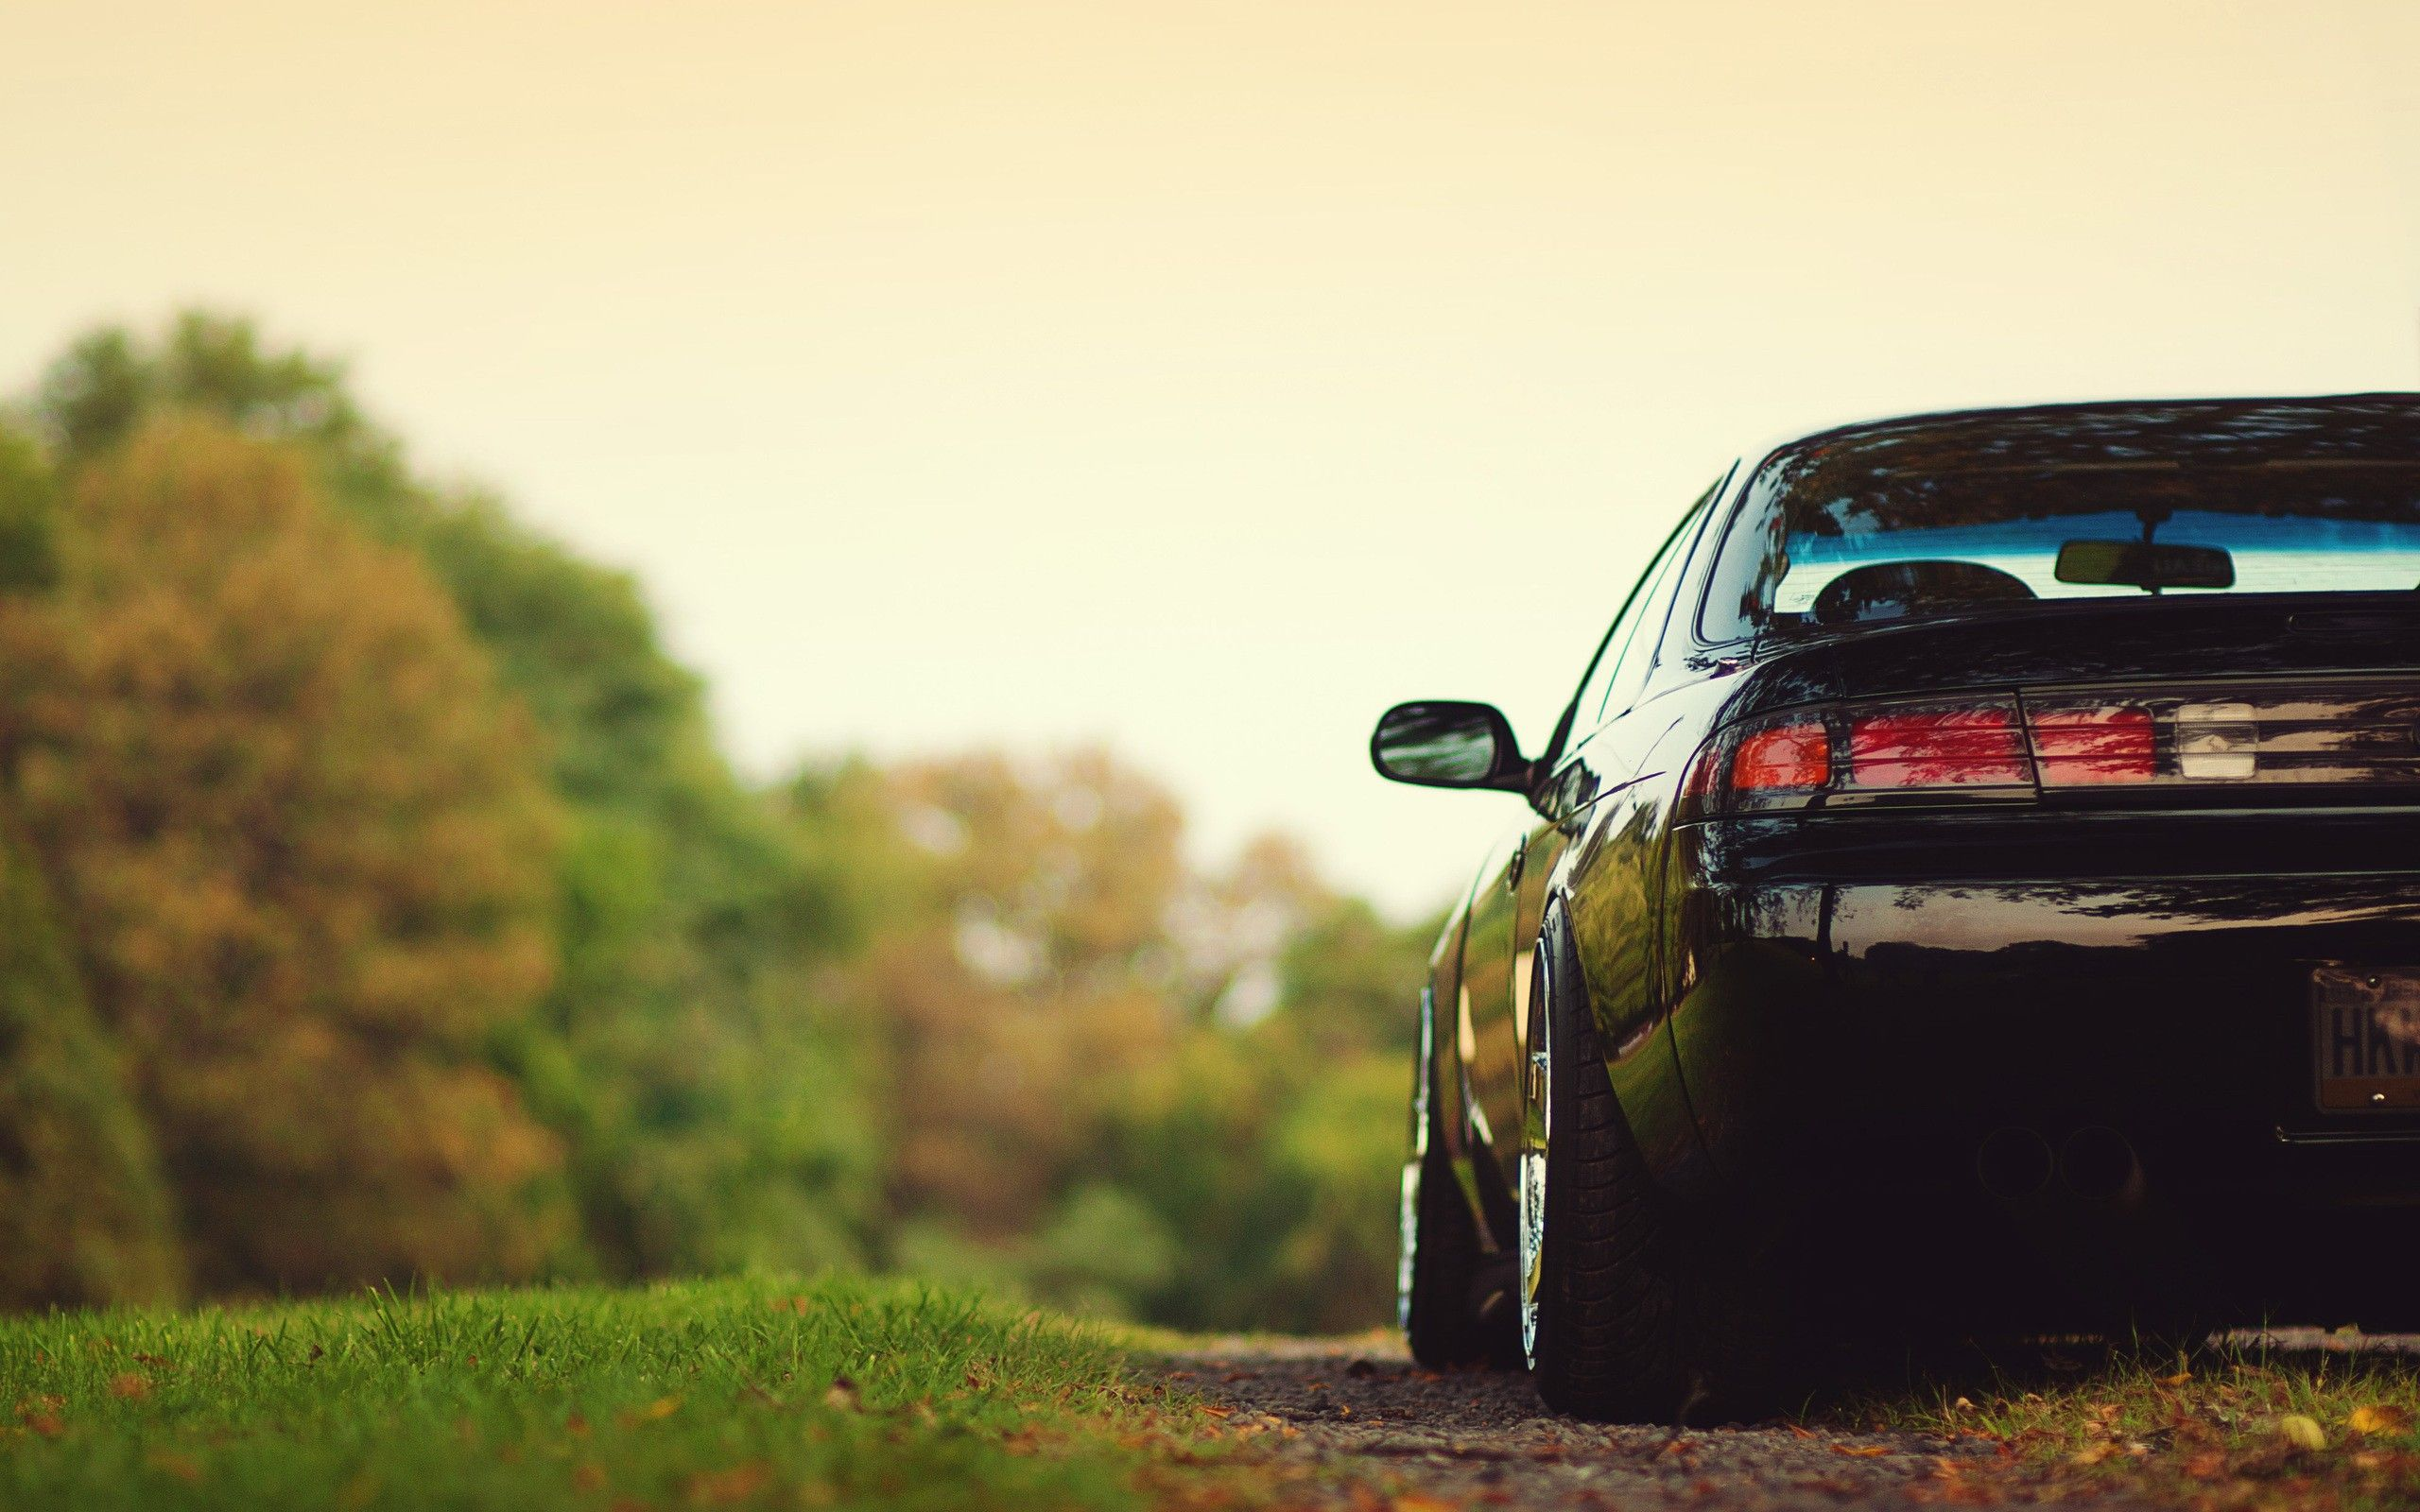 2560x1600 - Nissan Silvia S14 Wallpapers 17